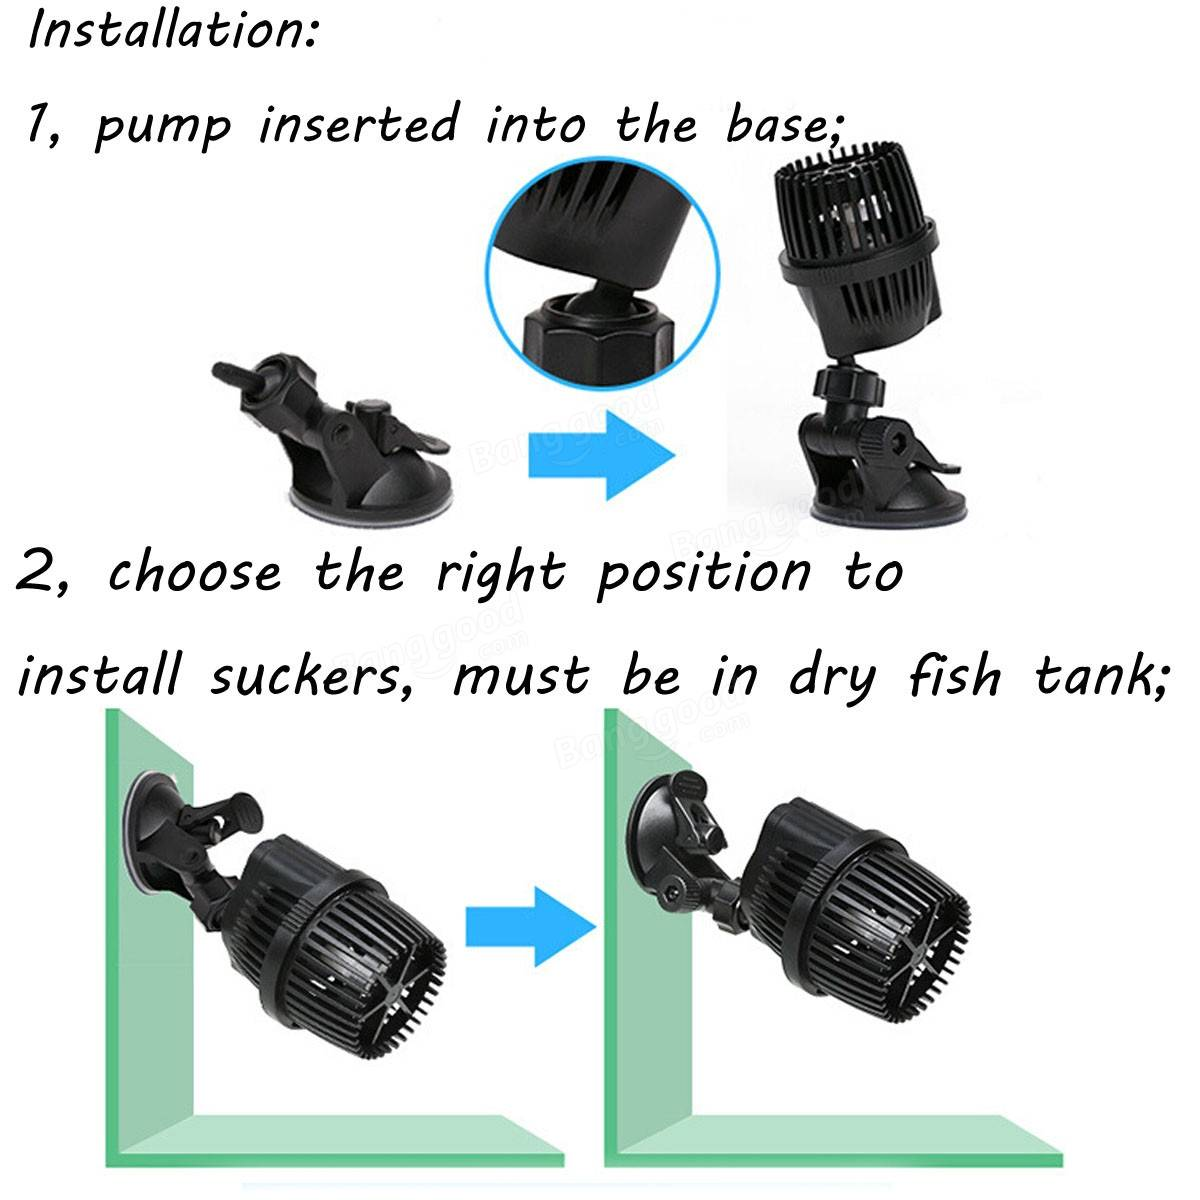 Aquarium fish tank wavemaker - 220v Aquarium Fish Tank Wave Maker Waving Pump 5000 10000 20000lph